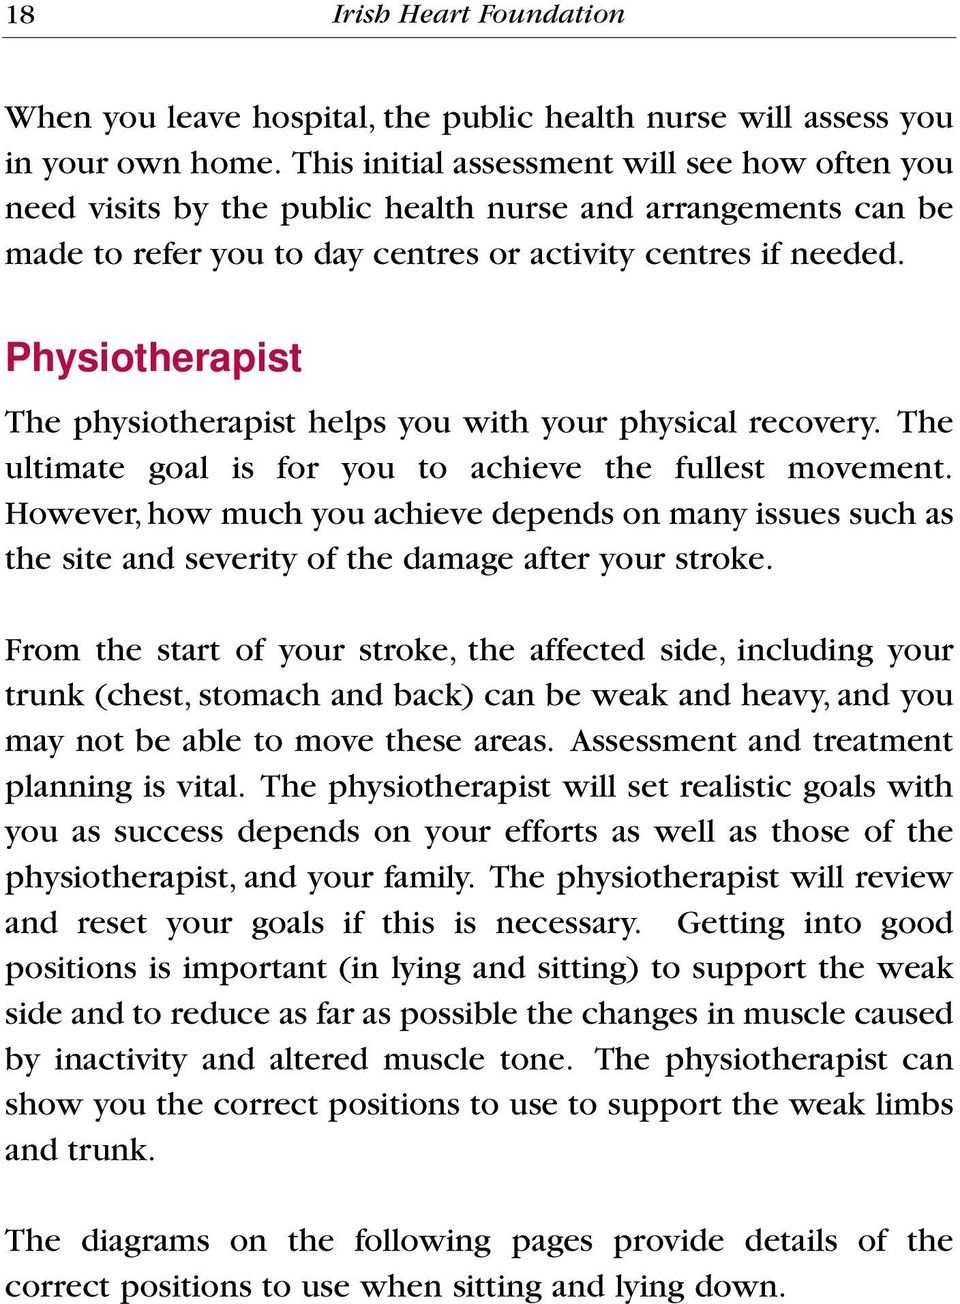 Physiotherapist The physiotherapist helps you with your physical recovery. The ultimate goal is for you to achieve the fullest movement.